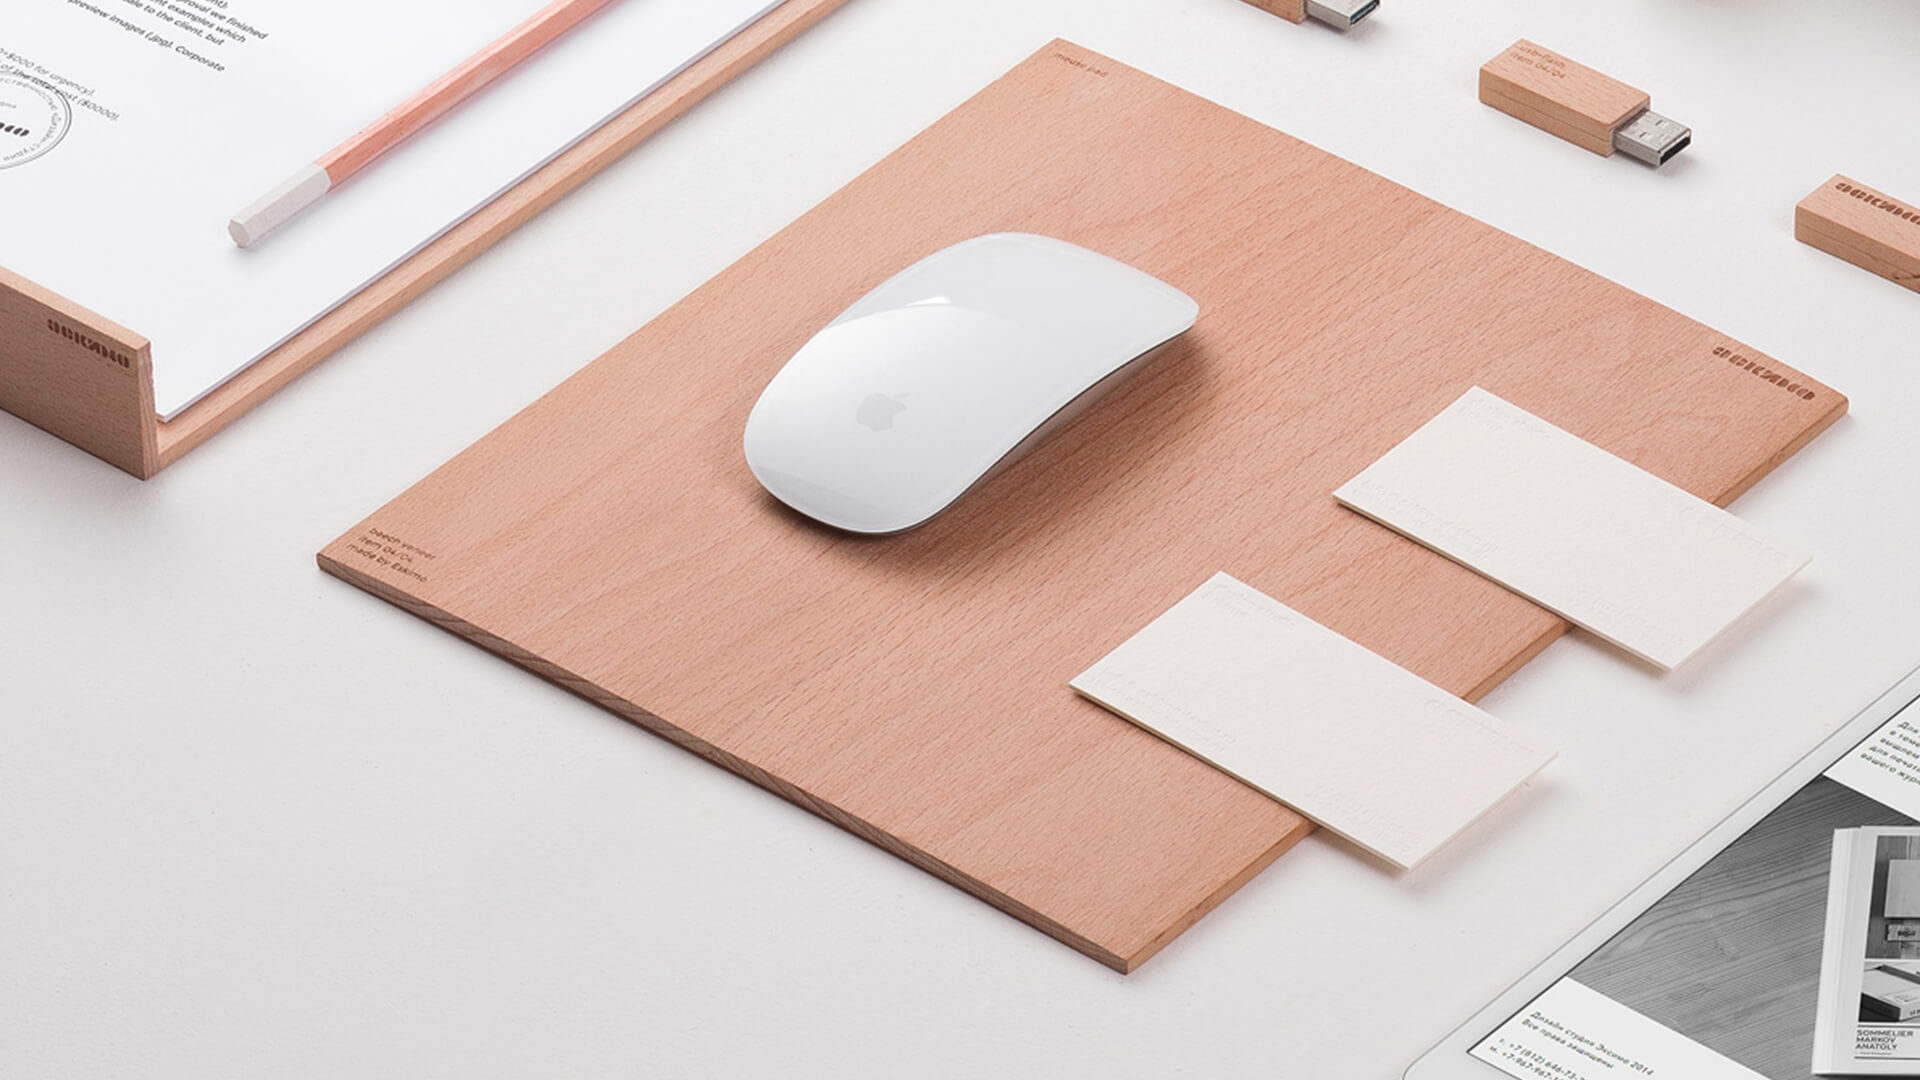 apple mouse and stationery